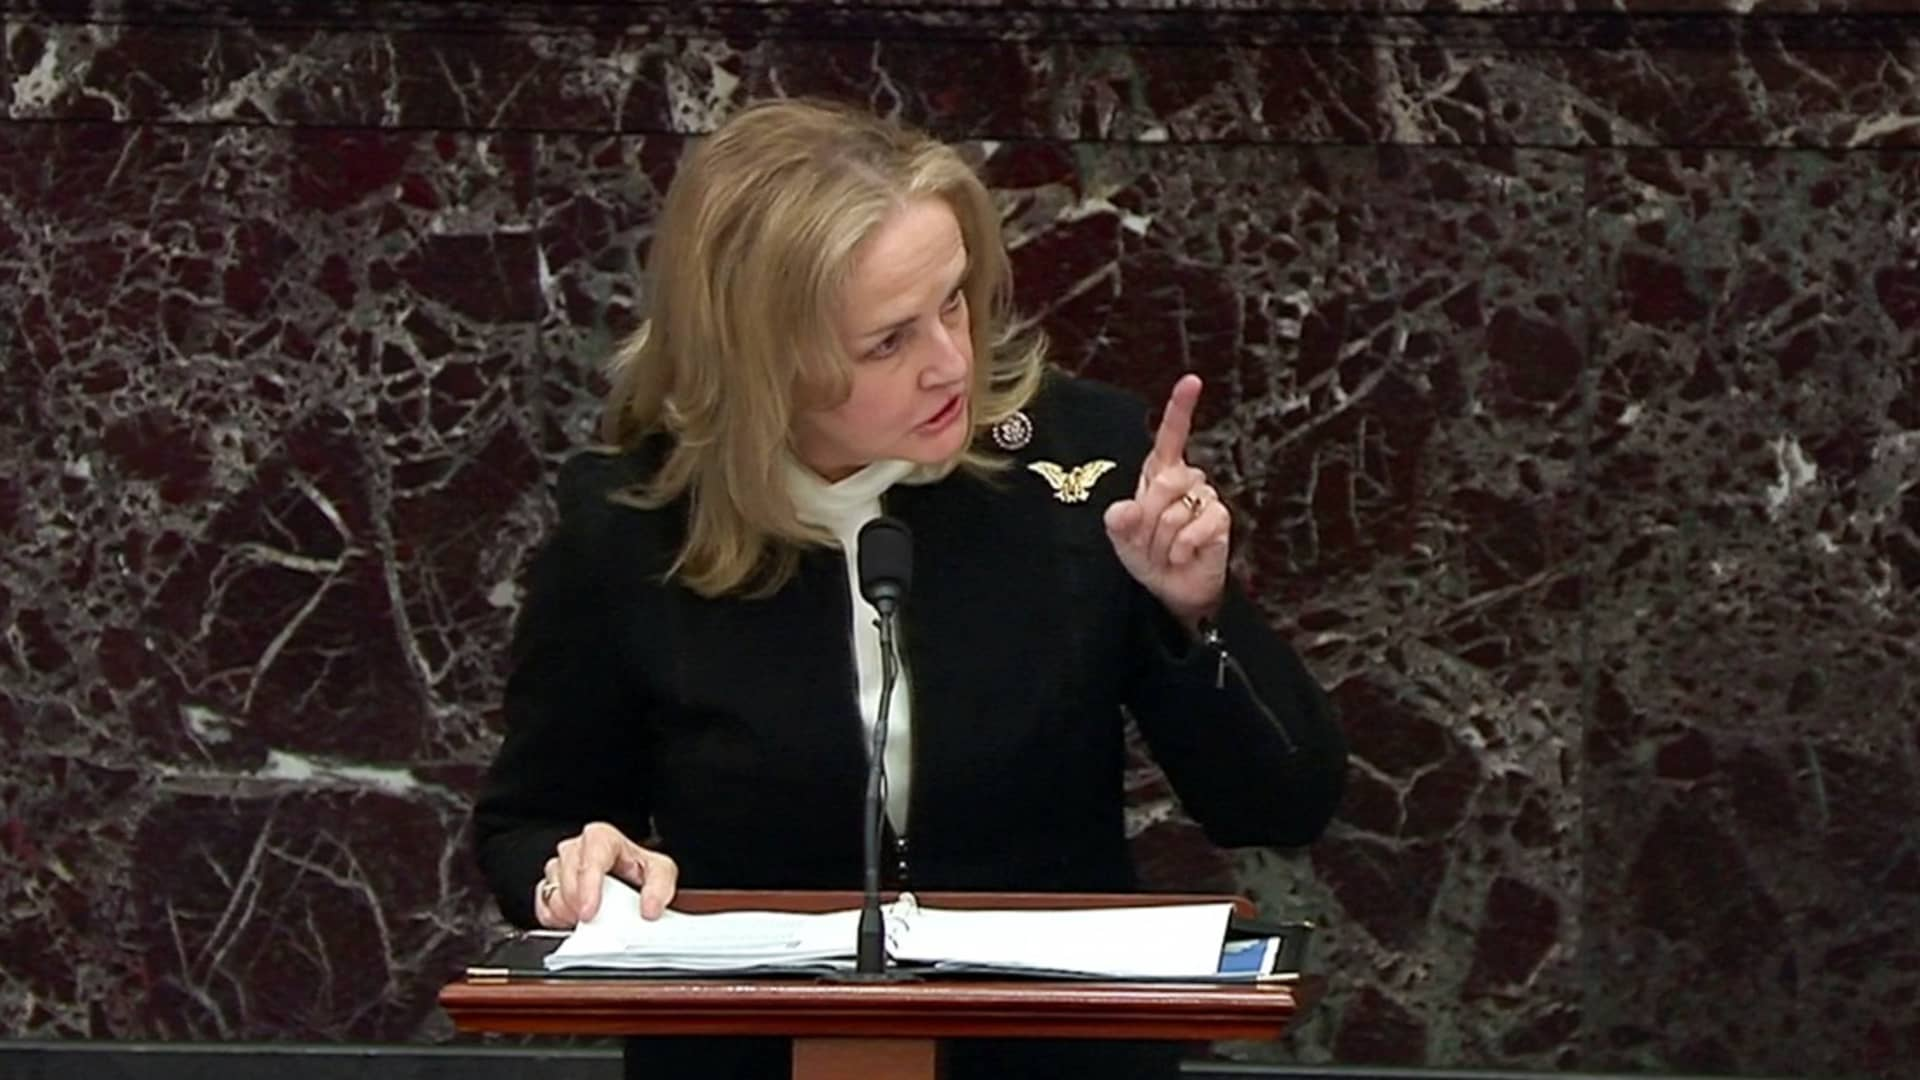 House impeachment manager Rep. Madeleine Dean (D-PA) delivers part of the impeachment managers' opening argument in the impeachment trial of former President Donald Trump, on charges of inciting the deadly attack on the U.S. Capitol, on the floor of the Senate chamber on Capitol Hill in Washington, U.S., February 10, 2021.